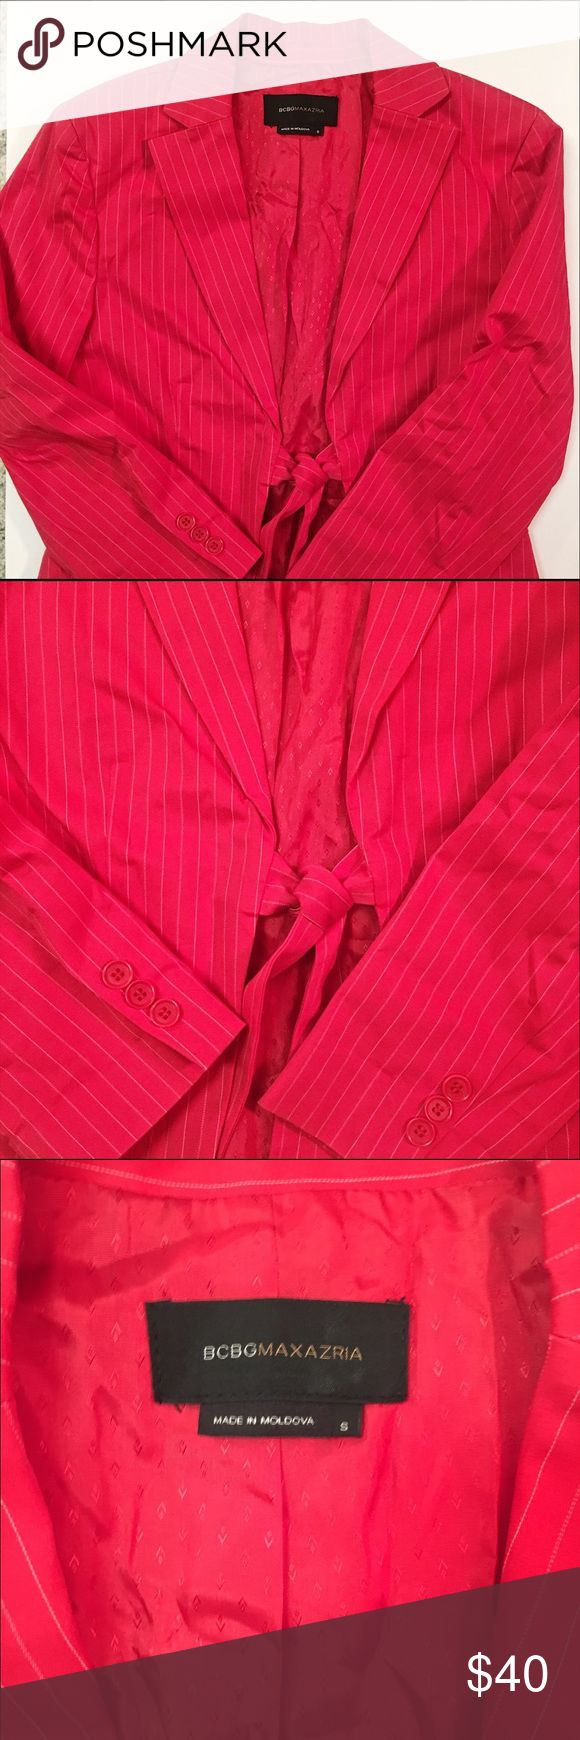 Bcbg red pin striped blazer Cute cropped blazer, tie front, pin stripes, bright red! Size small/ fits 2-6 well BCBGMaxAzria Jackets & Coats Blazers